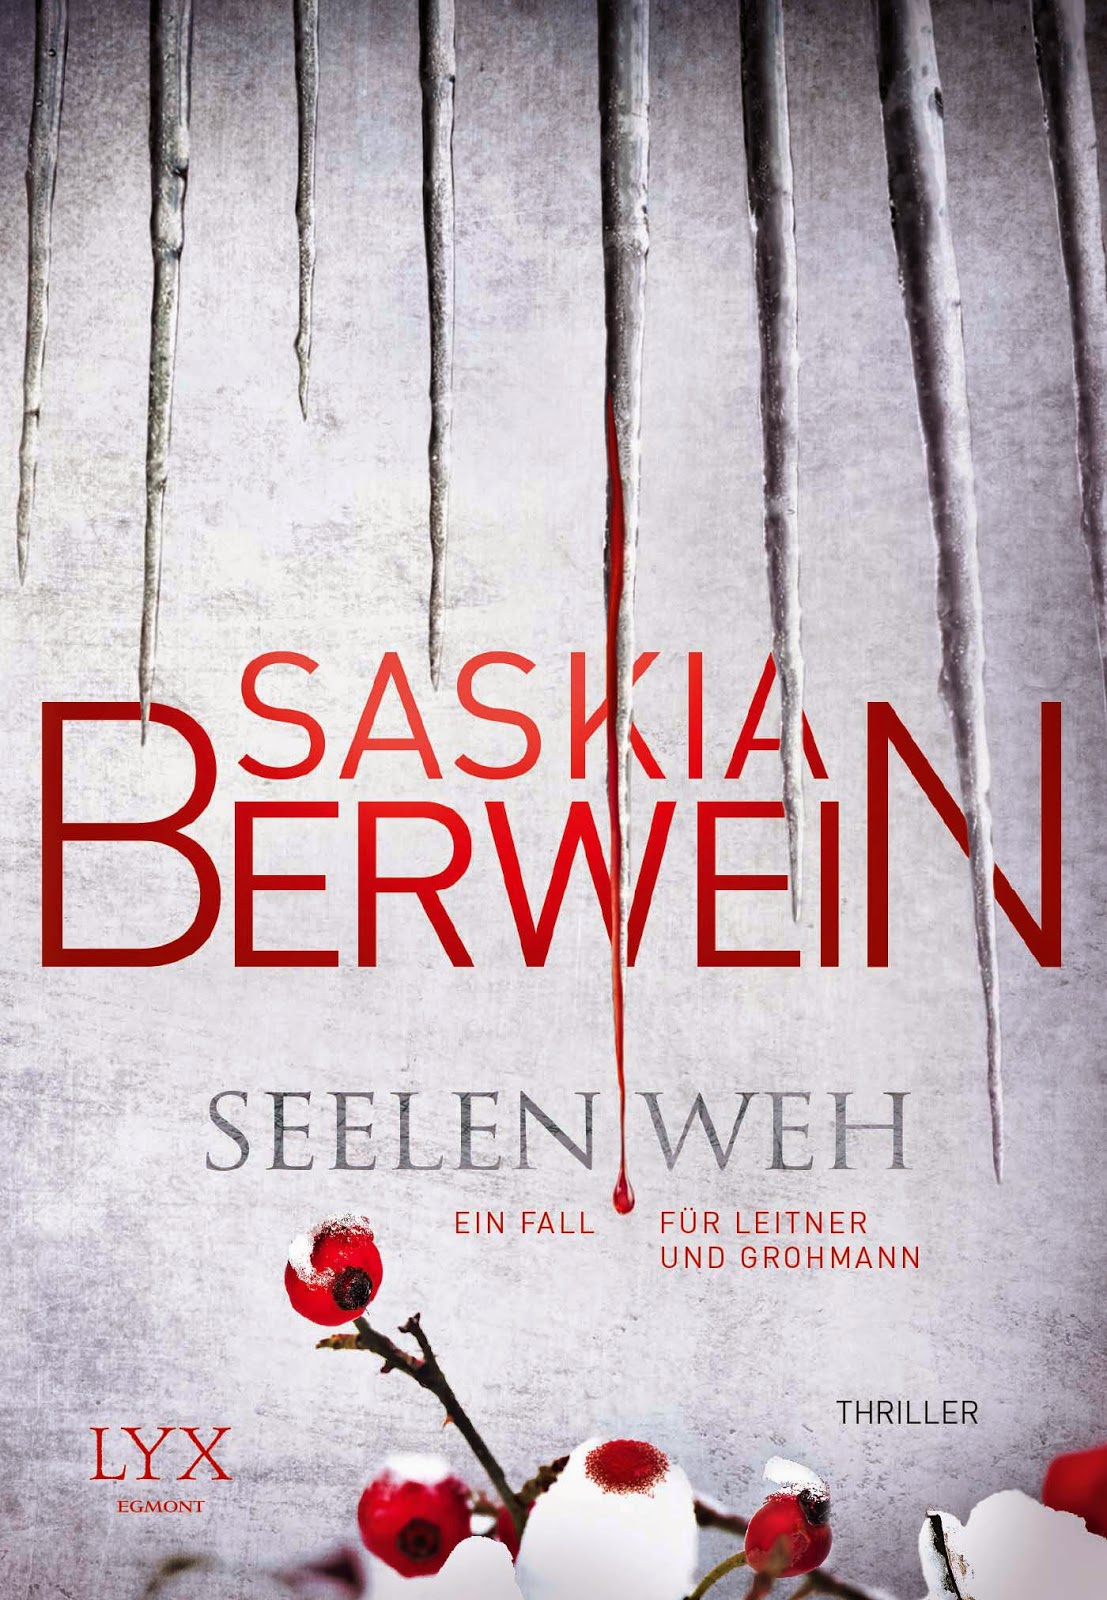 http://www.amazon.de/Seelenweh-Ein-Fall-Leitner-Grohmann/dp/3802594045/ref=sr_1_1?ie=UTF8&qid=1413639595&sr=8-1&keywords=seelenweh